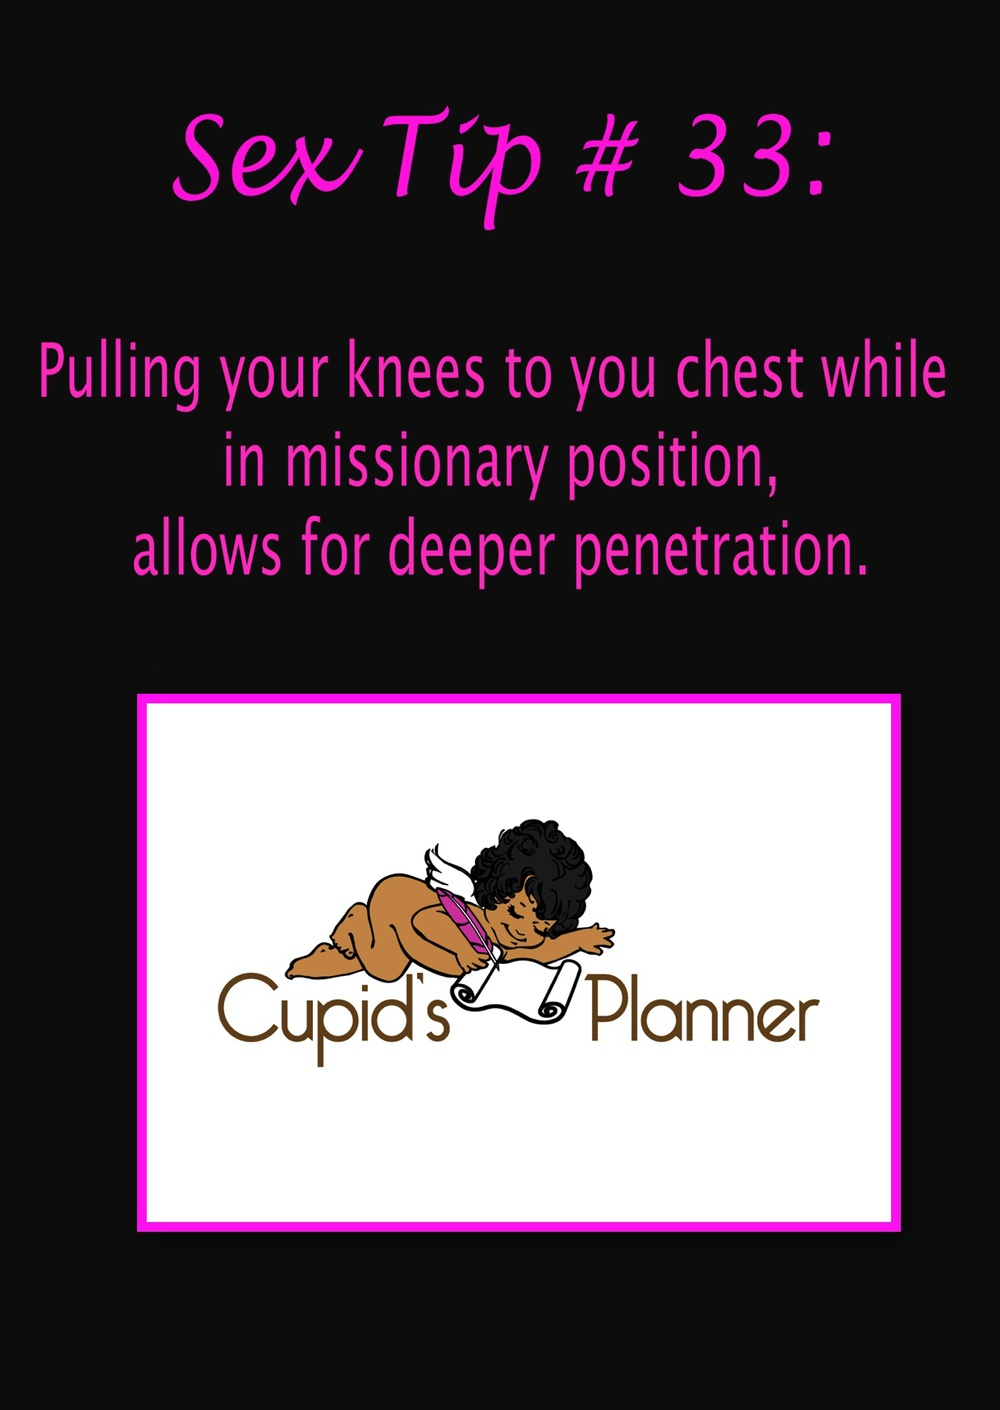 Sex Tip # 33: Pull your knees to your chest for deeper penetration